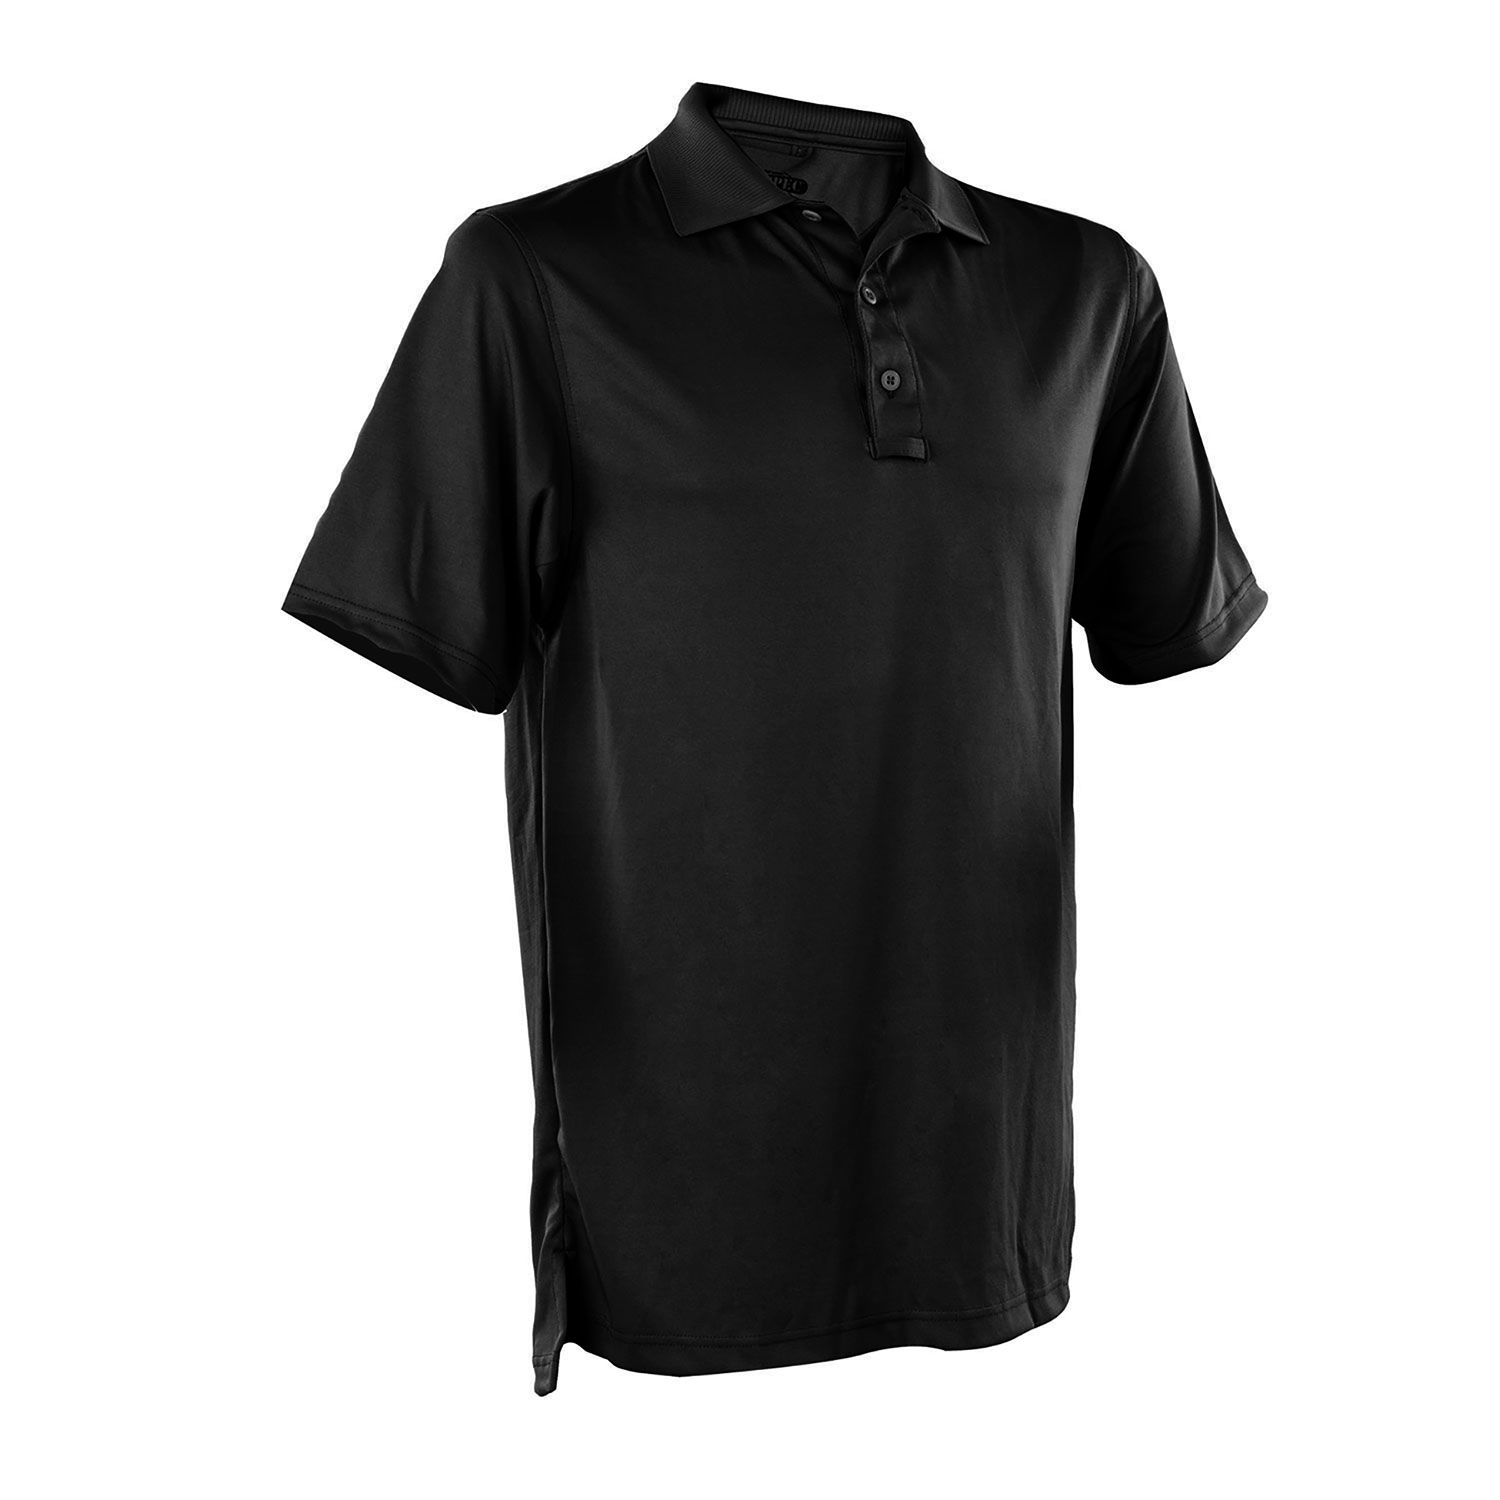 Tru-Spec 24-7 Men's Short Sleeve Performance Polo